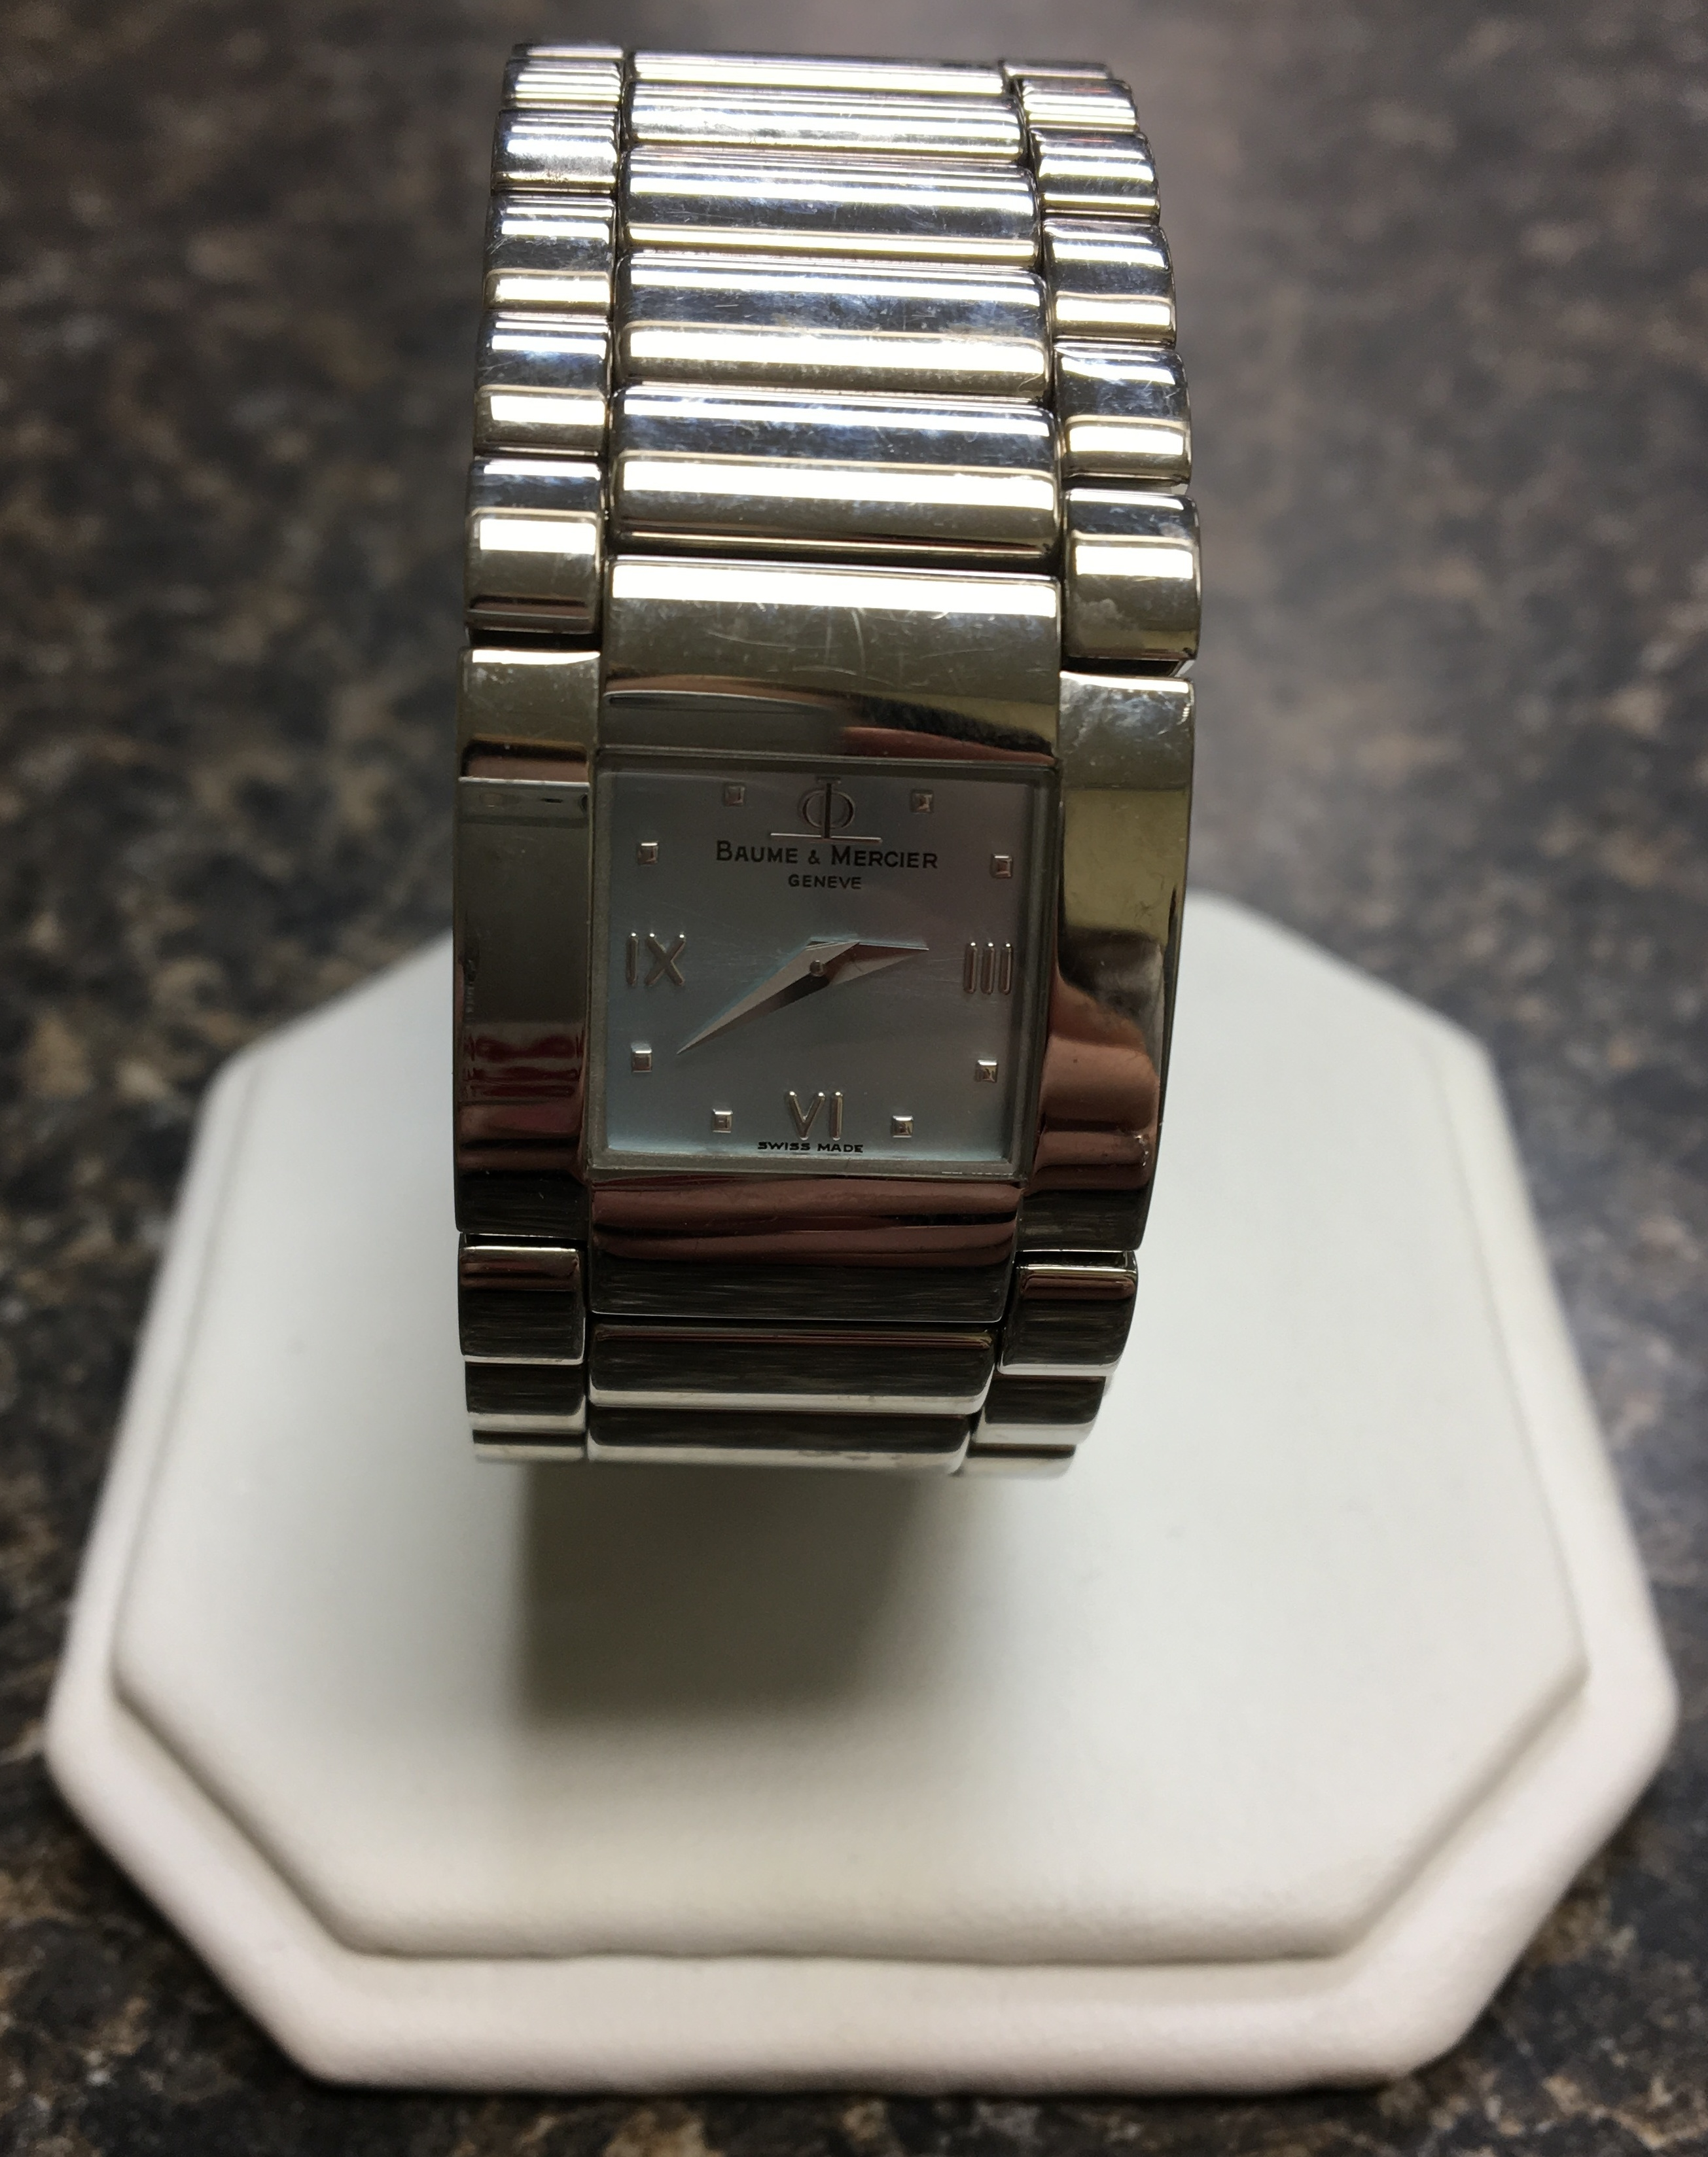 JEWELRY: BAUME & MERCIER STAINLESS STEEL WATCH - MV045197